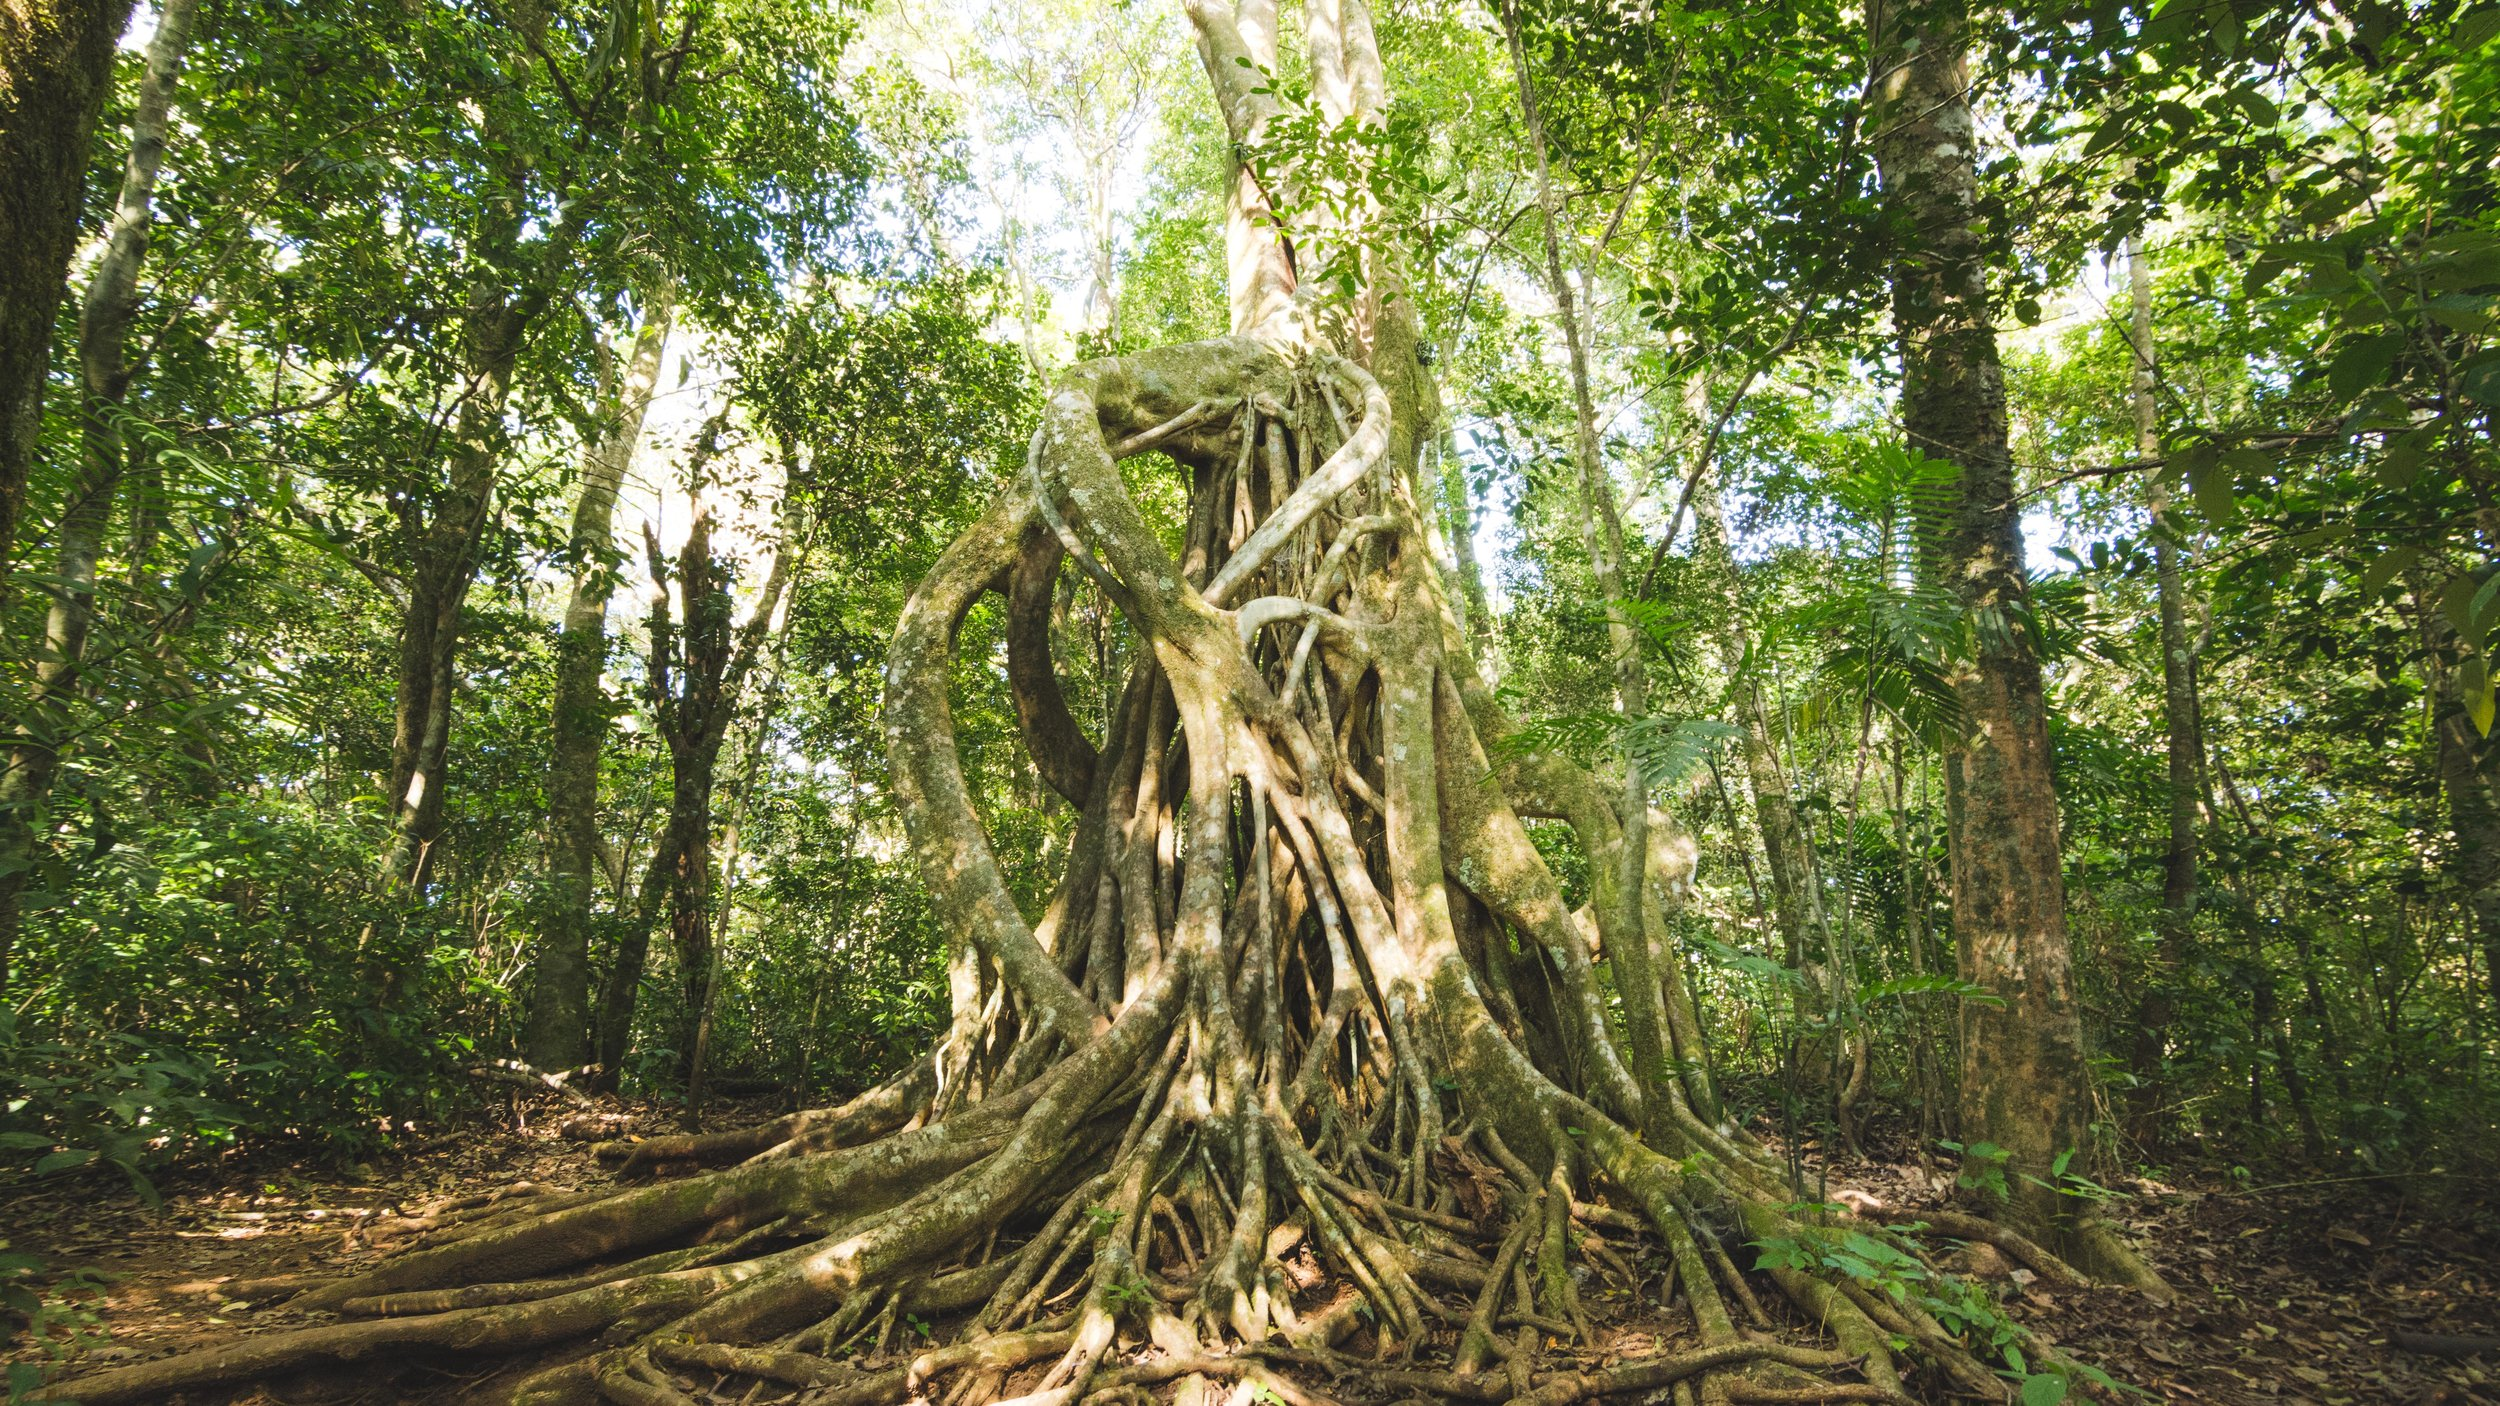 A majestic strangler fig in one of our trails, this tree plays an essential role in the complex web of life in the tropics.